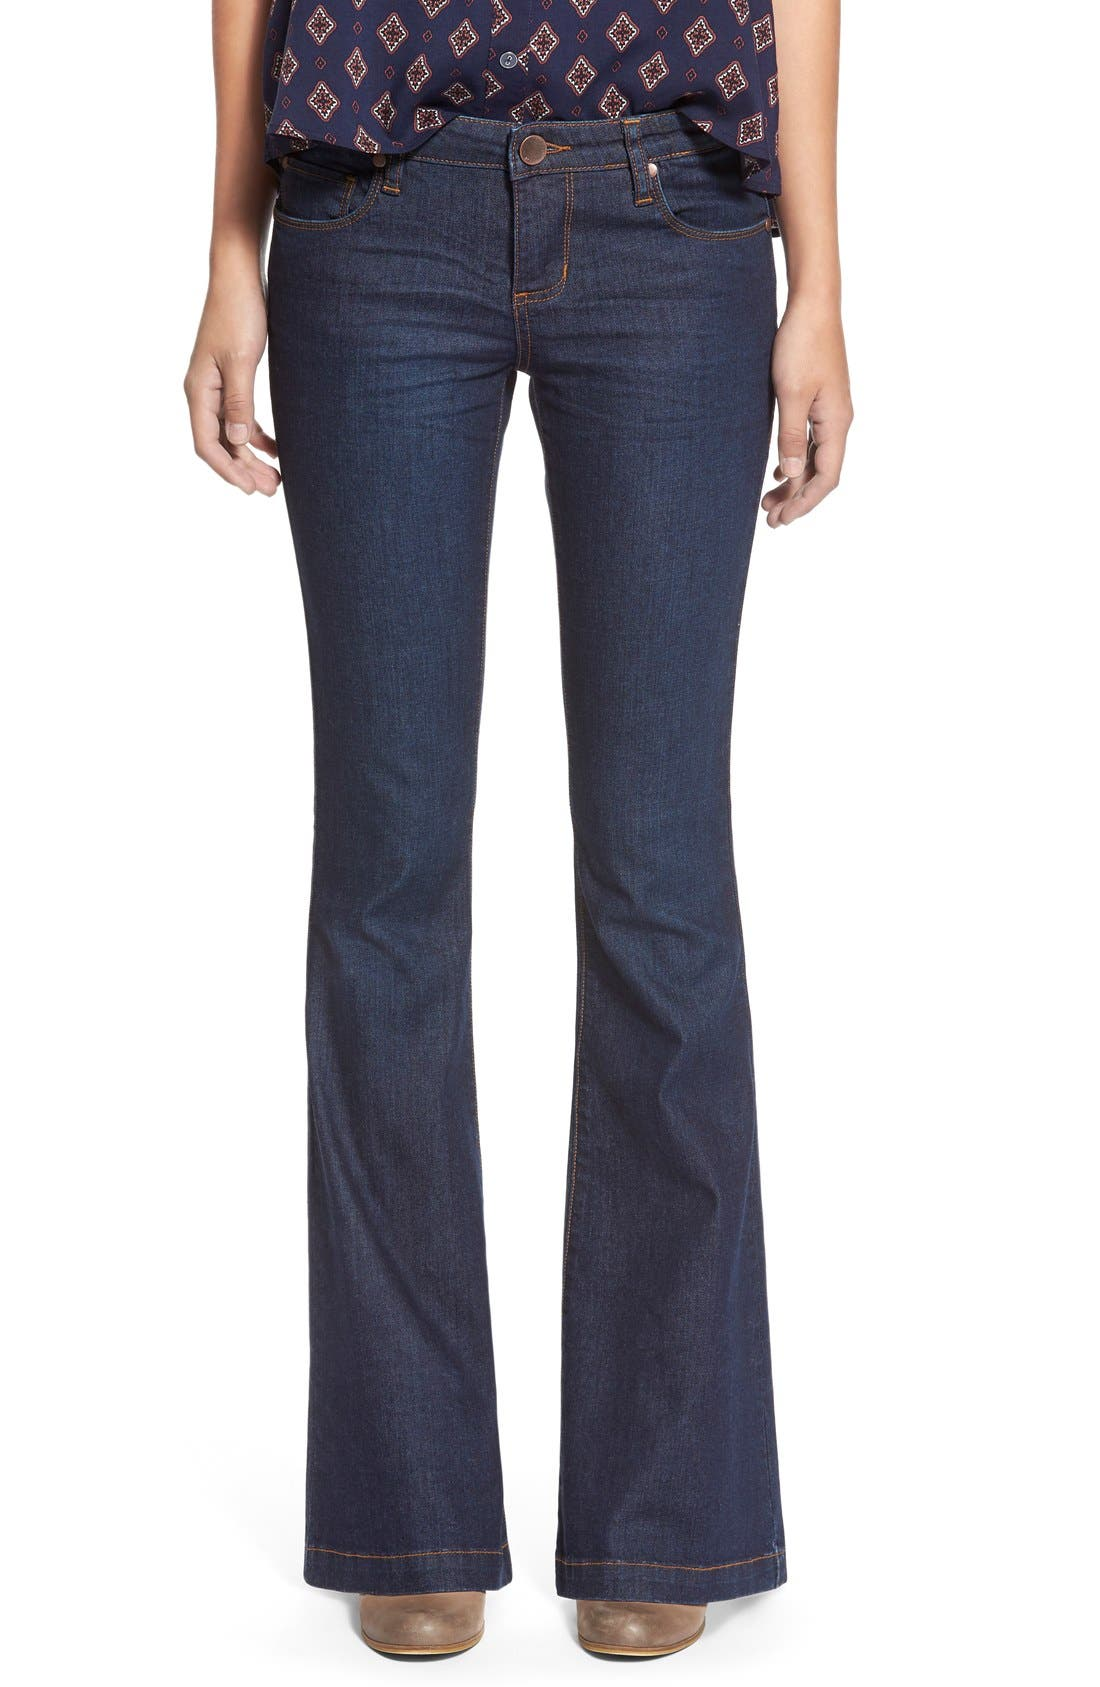 Alternate Image 1 Selected - STS Blue 'Nikki' Flare Leg Skinny Jeans (Napa)